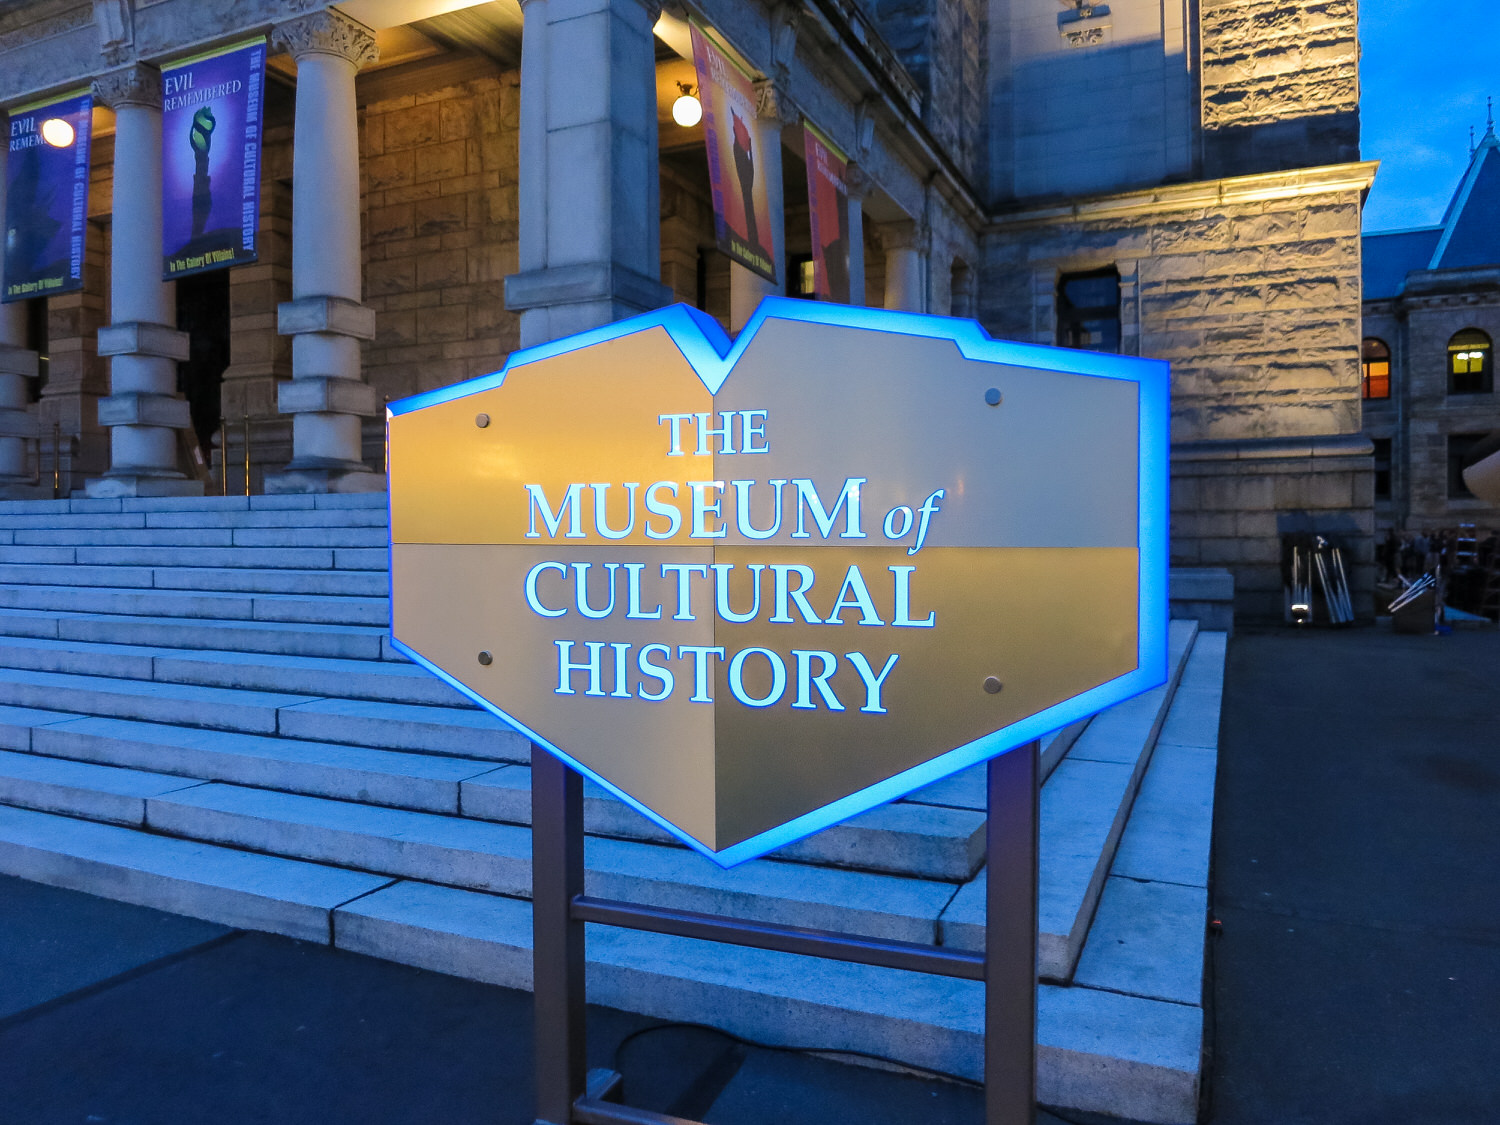 All the collected artifacts of mighty Auradon, good and bad are collected at the Museum of Cultural History. Here is the sign by the front entrance.